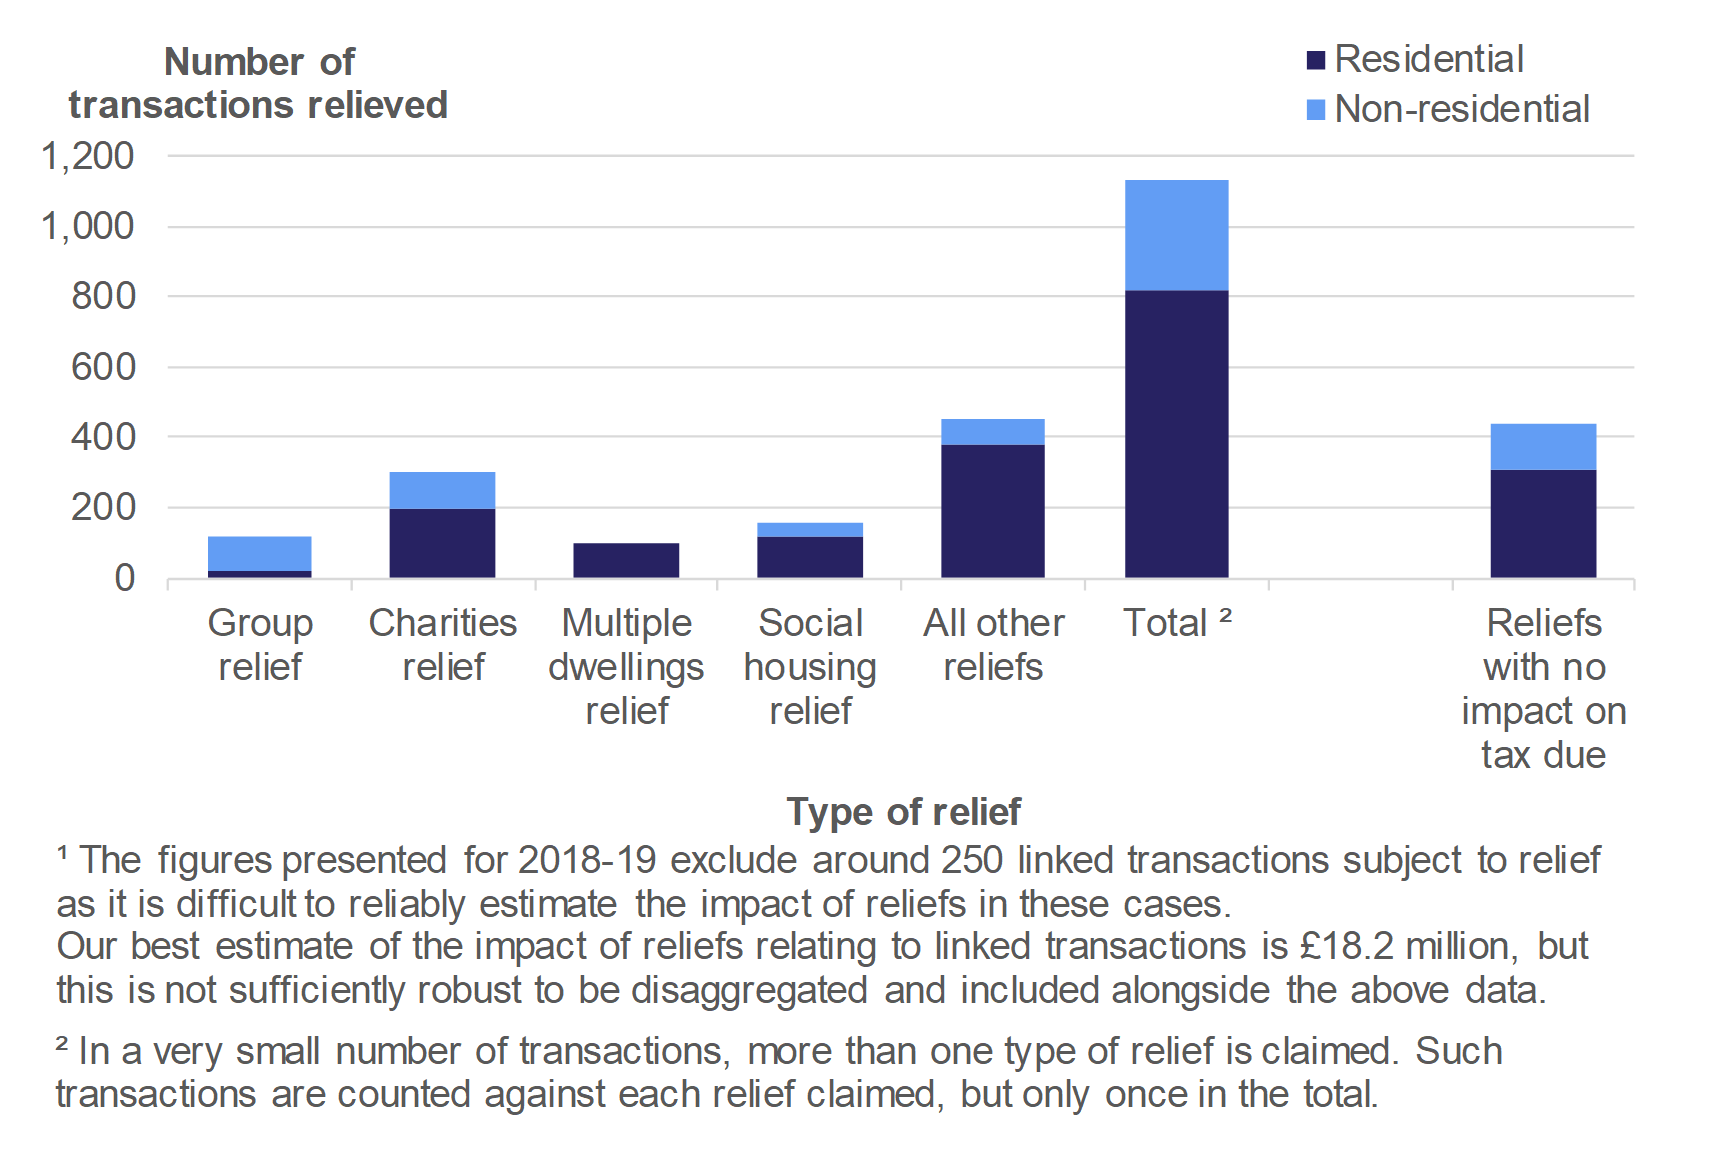 Figure 5.1 shows the number of reliefs applied to residential and non-residential transactions in April 2018 to March 2019, by type of relief. A separate figure is shown for the number of reliefs where the relief had no impact on the tax due.